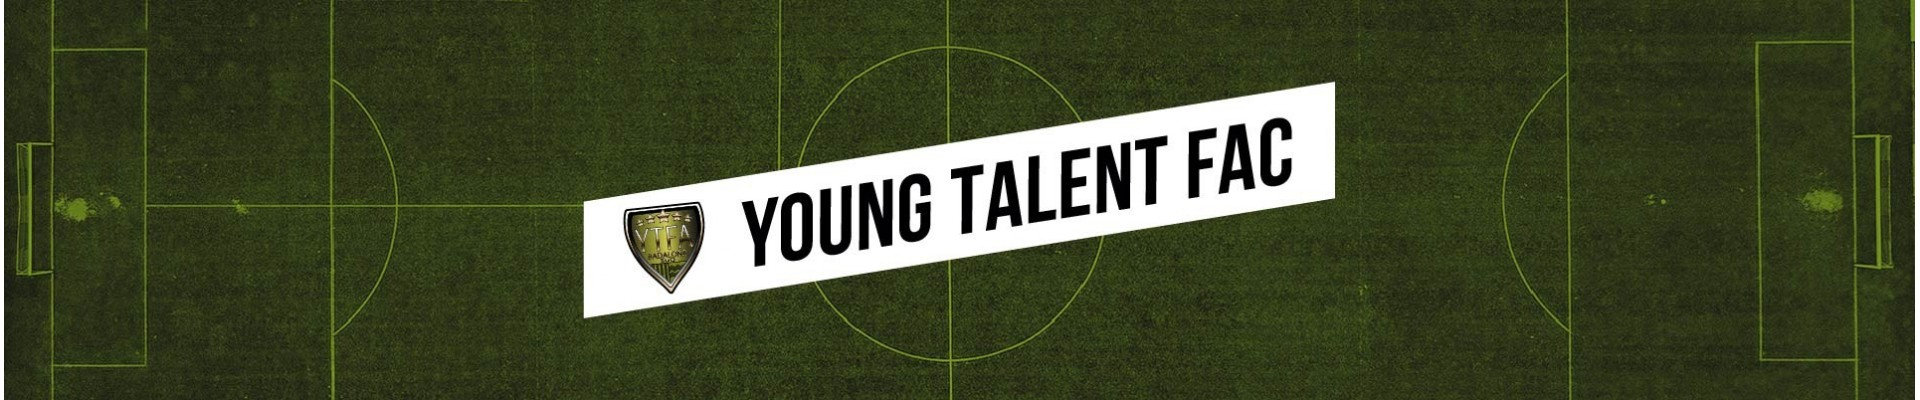 YOUNG TALENT FAC